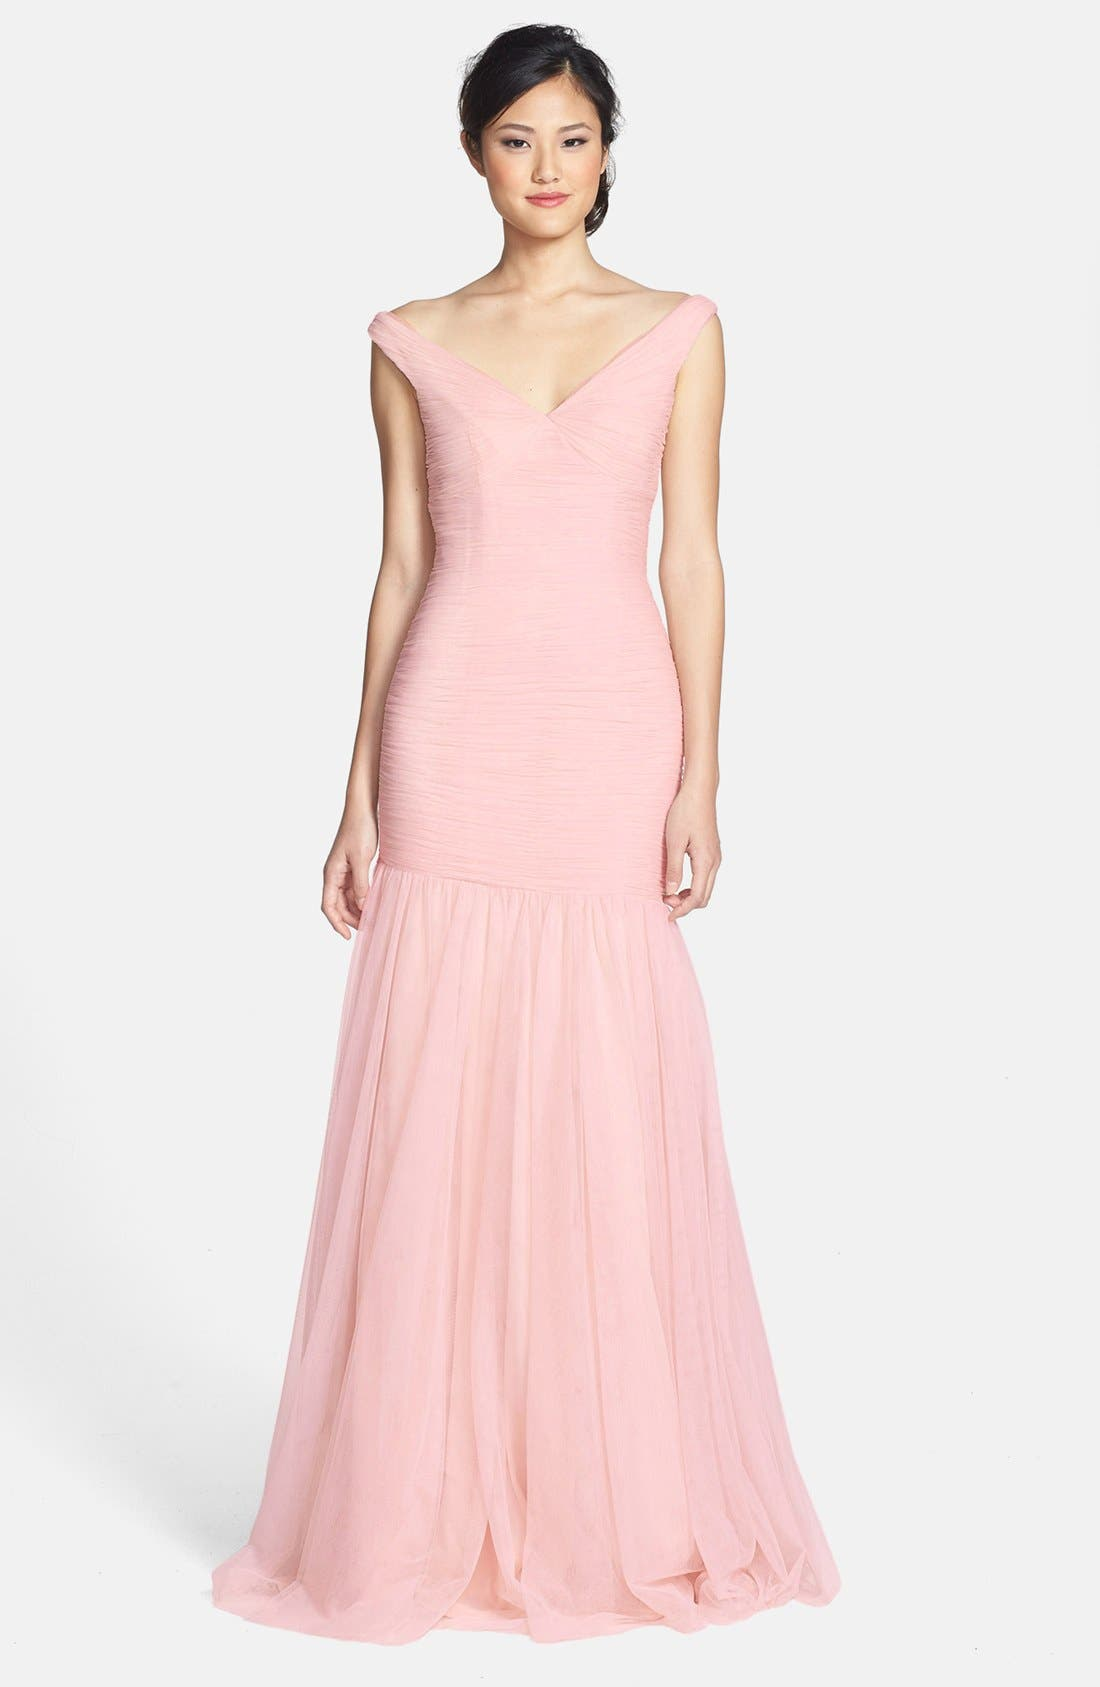 Alternate Image 1 Selected - Monique Lhuillier Bridesmaids V-Neck Shirred Tulle Trumpet Dress